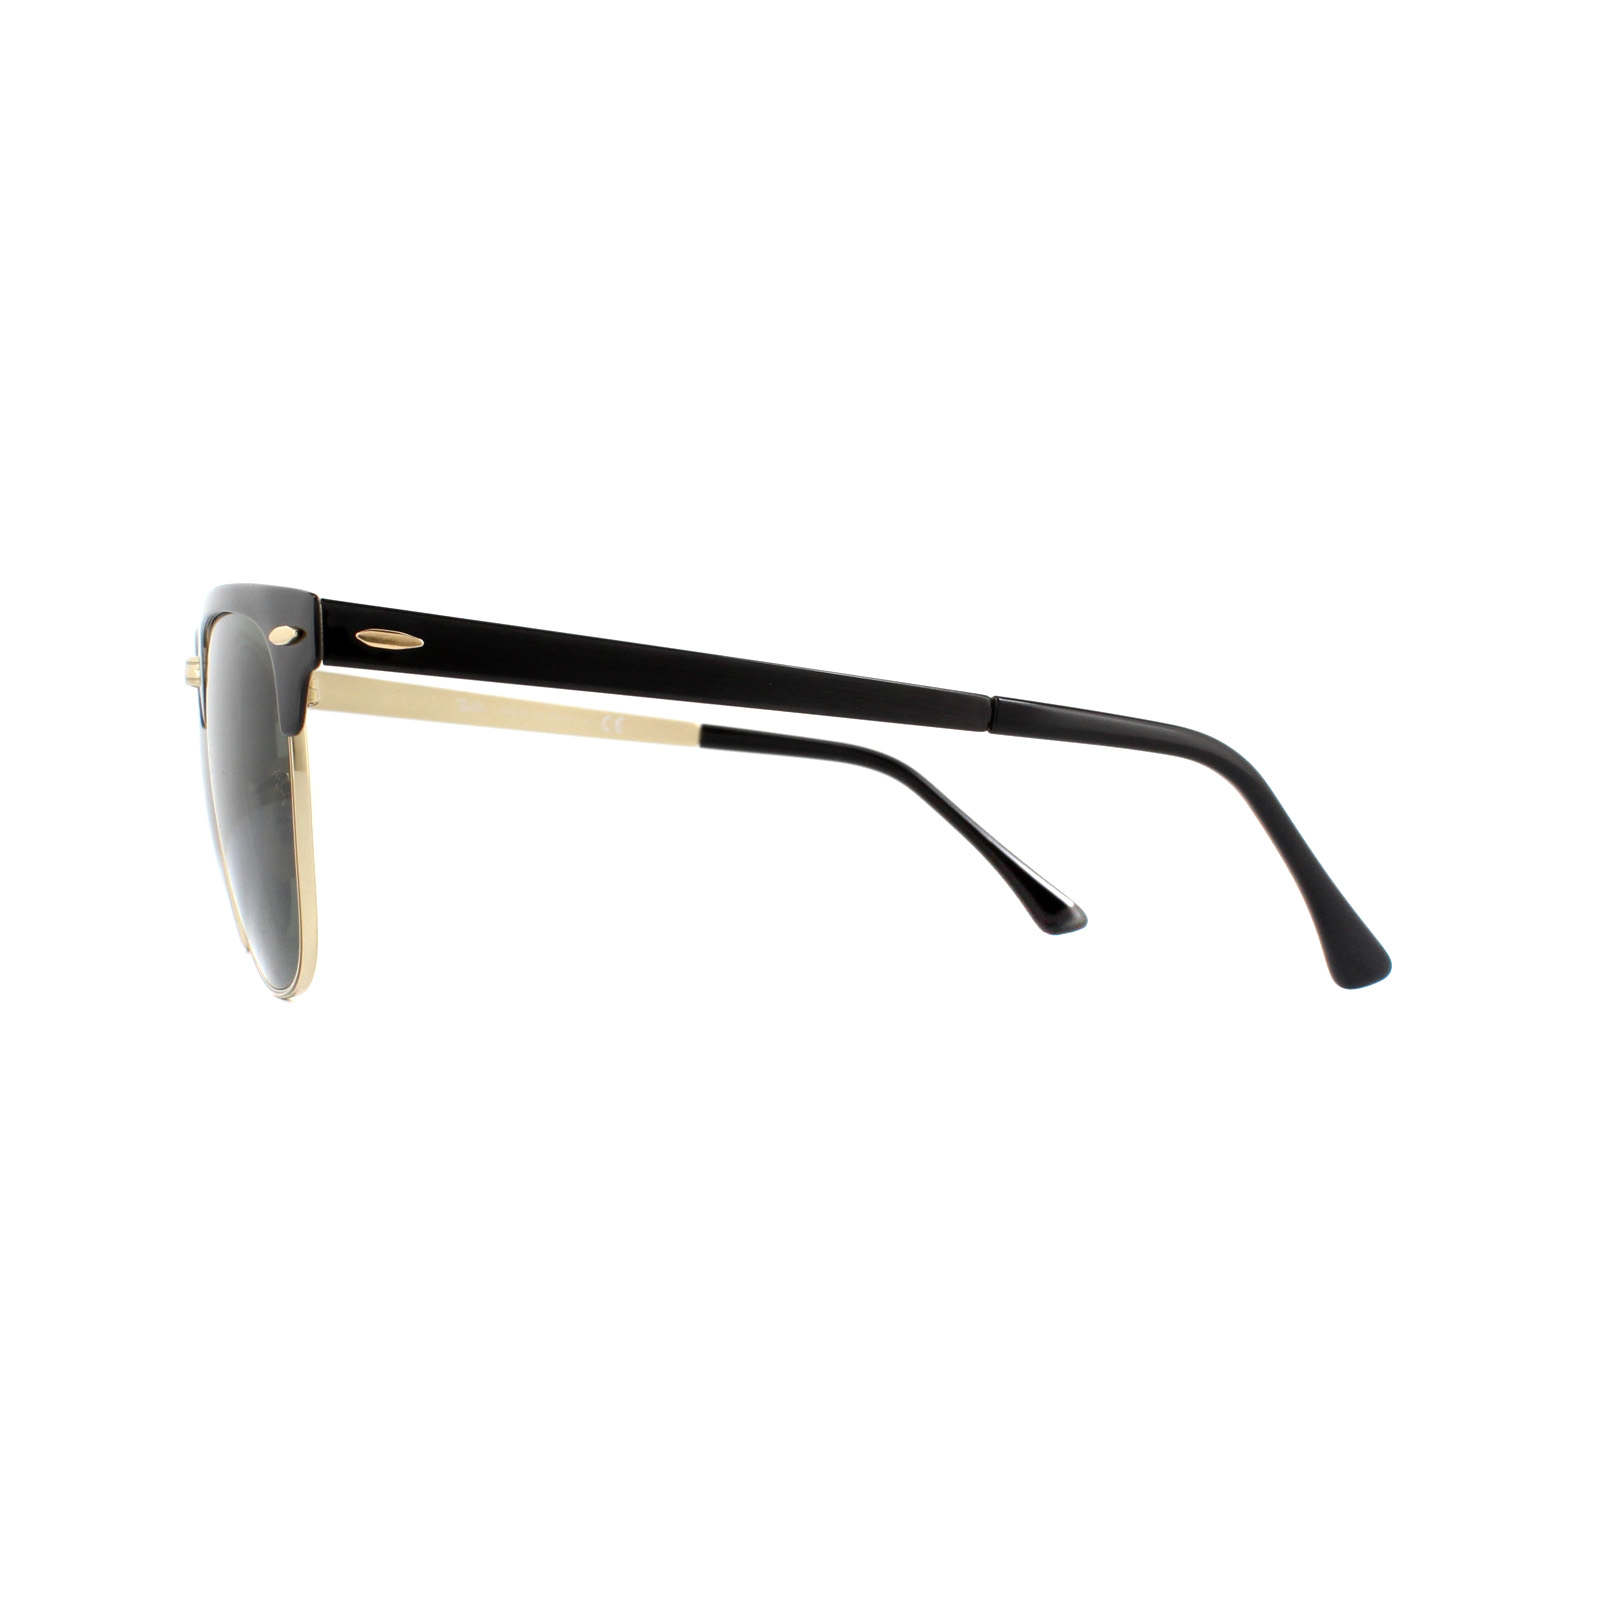 e848c2bc177 Sentinel Ray-Ban Sunglasses Clubmaster Metal RB3716 187 Gold Top On Black  Green